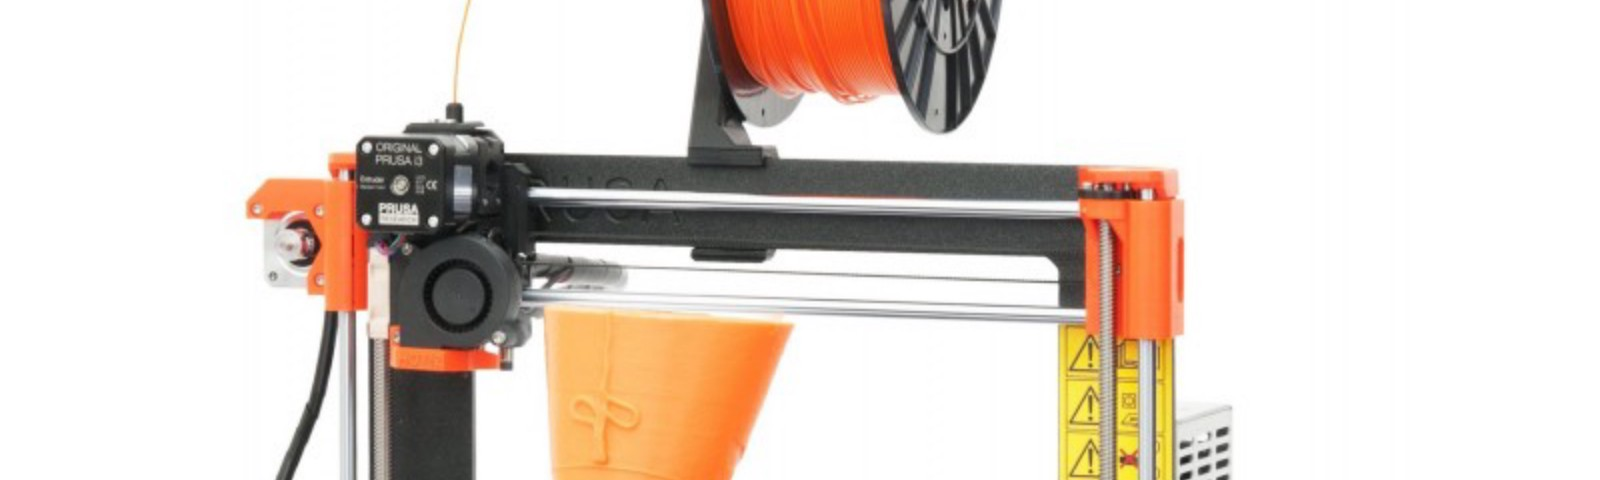 Is Prusa's i3 MK3 The Tesla of Under-$1000 3D Printers?